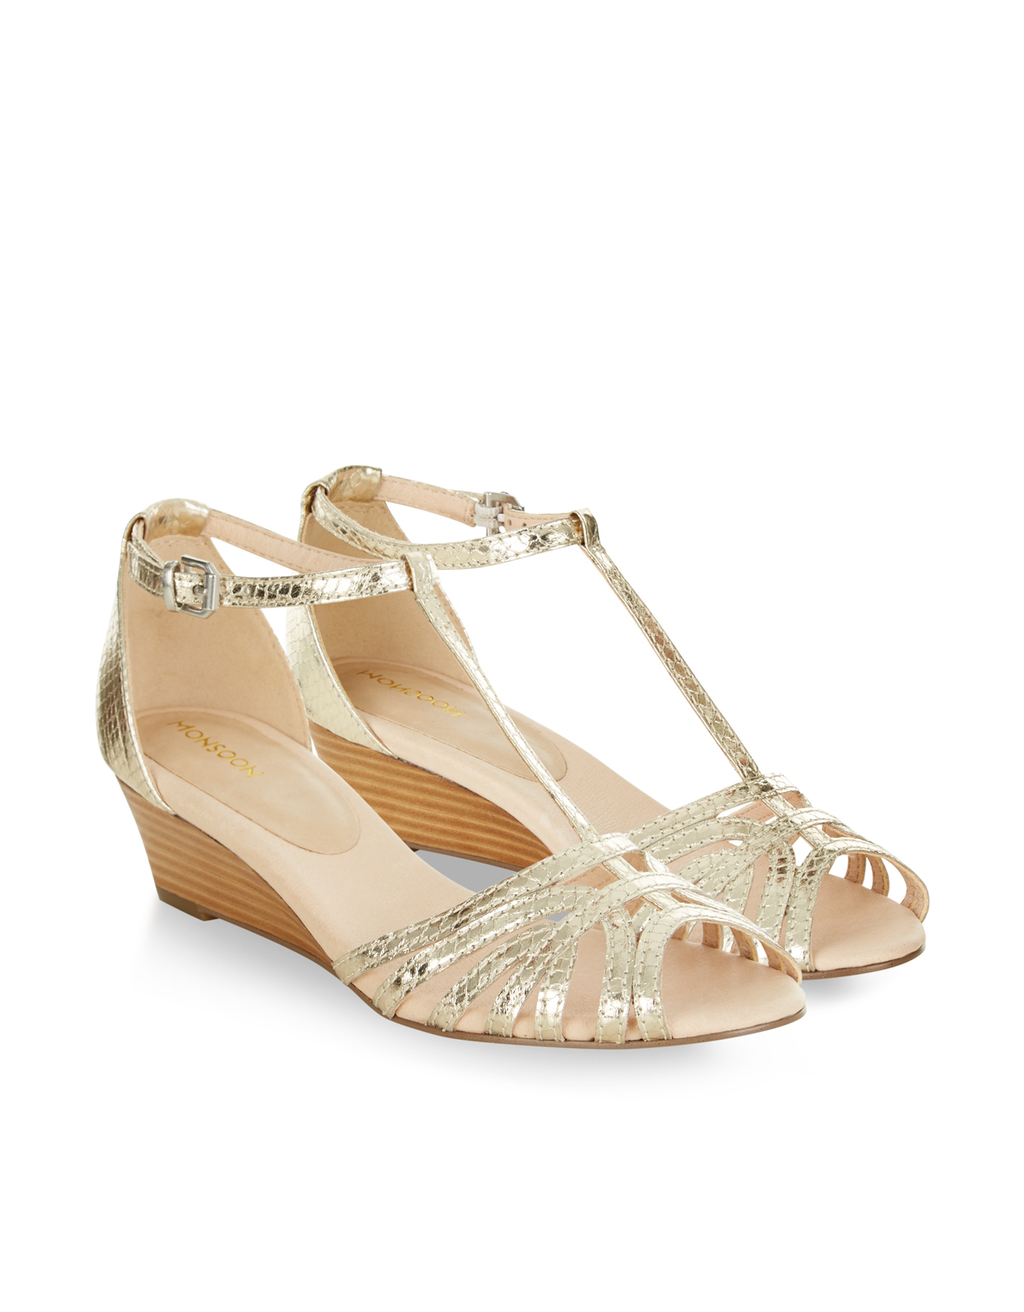 Shakira Demi Wedge Sandal - predominant colour: gold; occasions: evening; material: leather; heel height: mid; heel: wedge; toe: open toe/peeptoe; style: strappy; finish: metallic; pattern: plain; season: s/s 2016